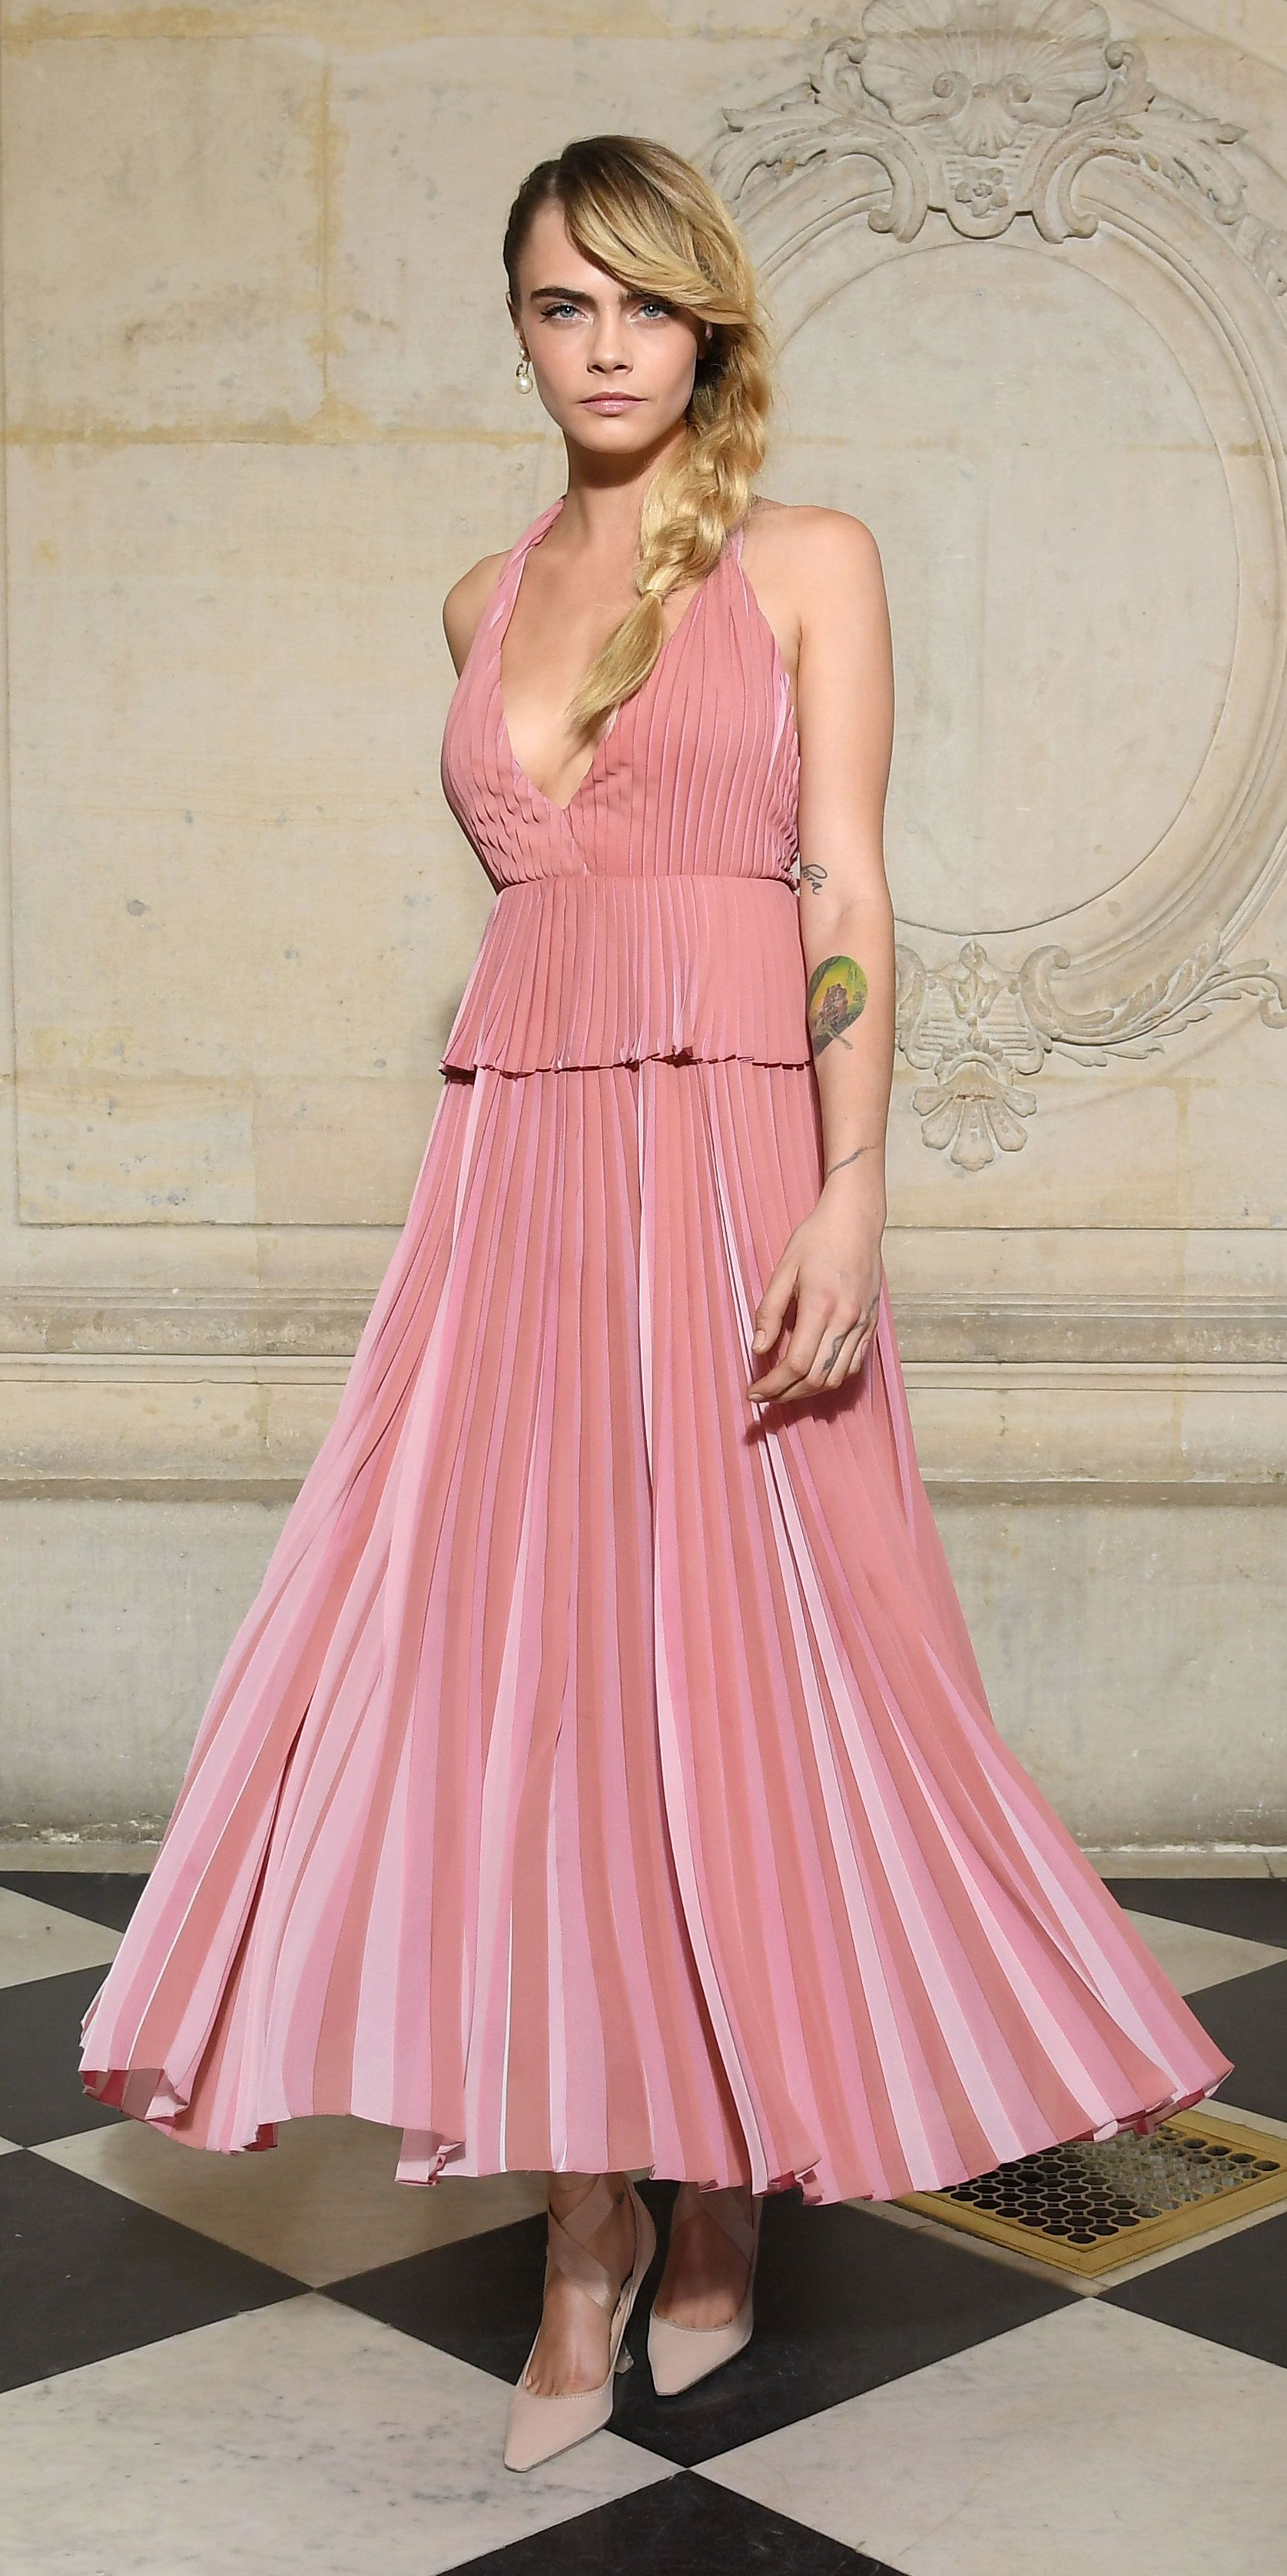 7ebad84bb954 For Dior's Fall 2019 presentation, Cara Delevingne switched up her edgy  style in a girly pink Dior dress and ballerina-inspired pumps.